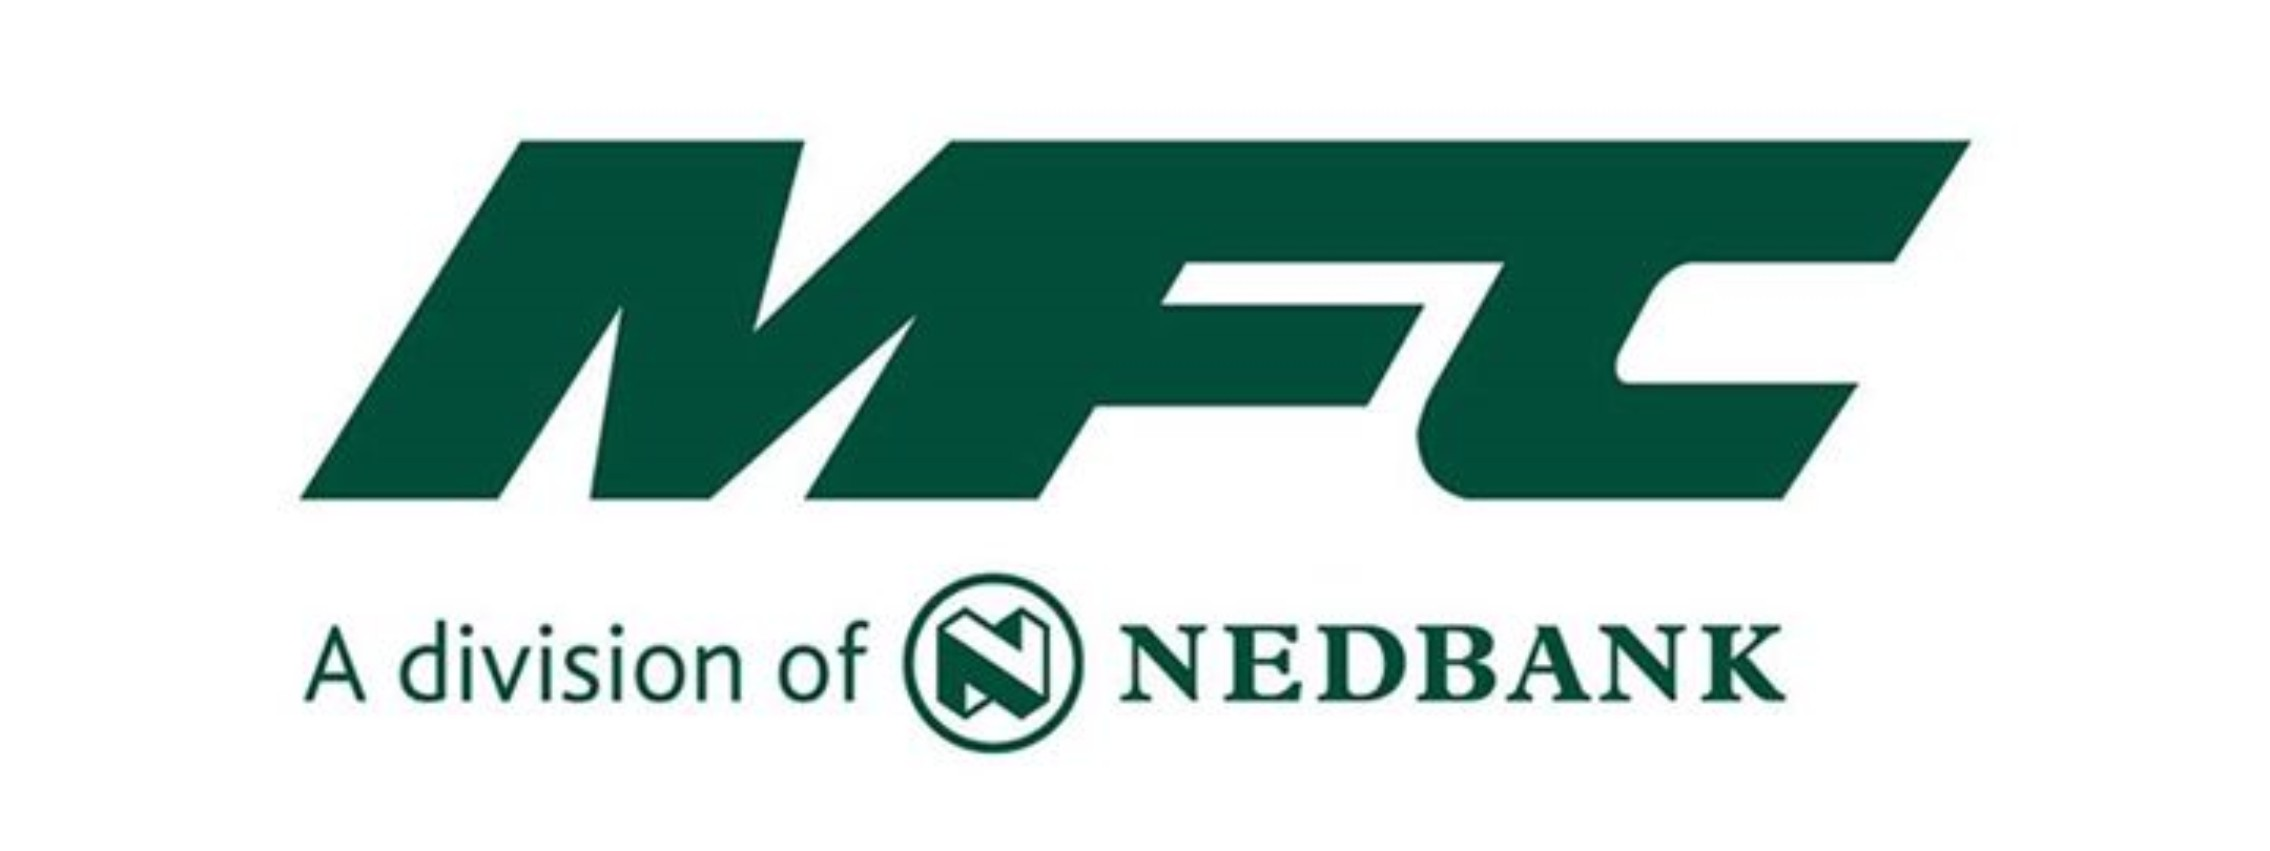 Car Auction Apps >> Nedbank Vehicle Finance Application - Vehicle Ideas